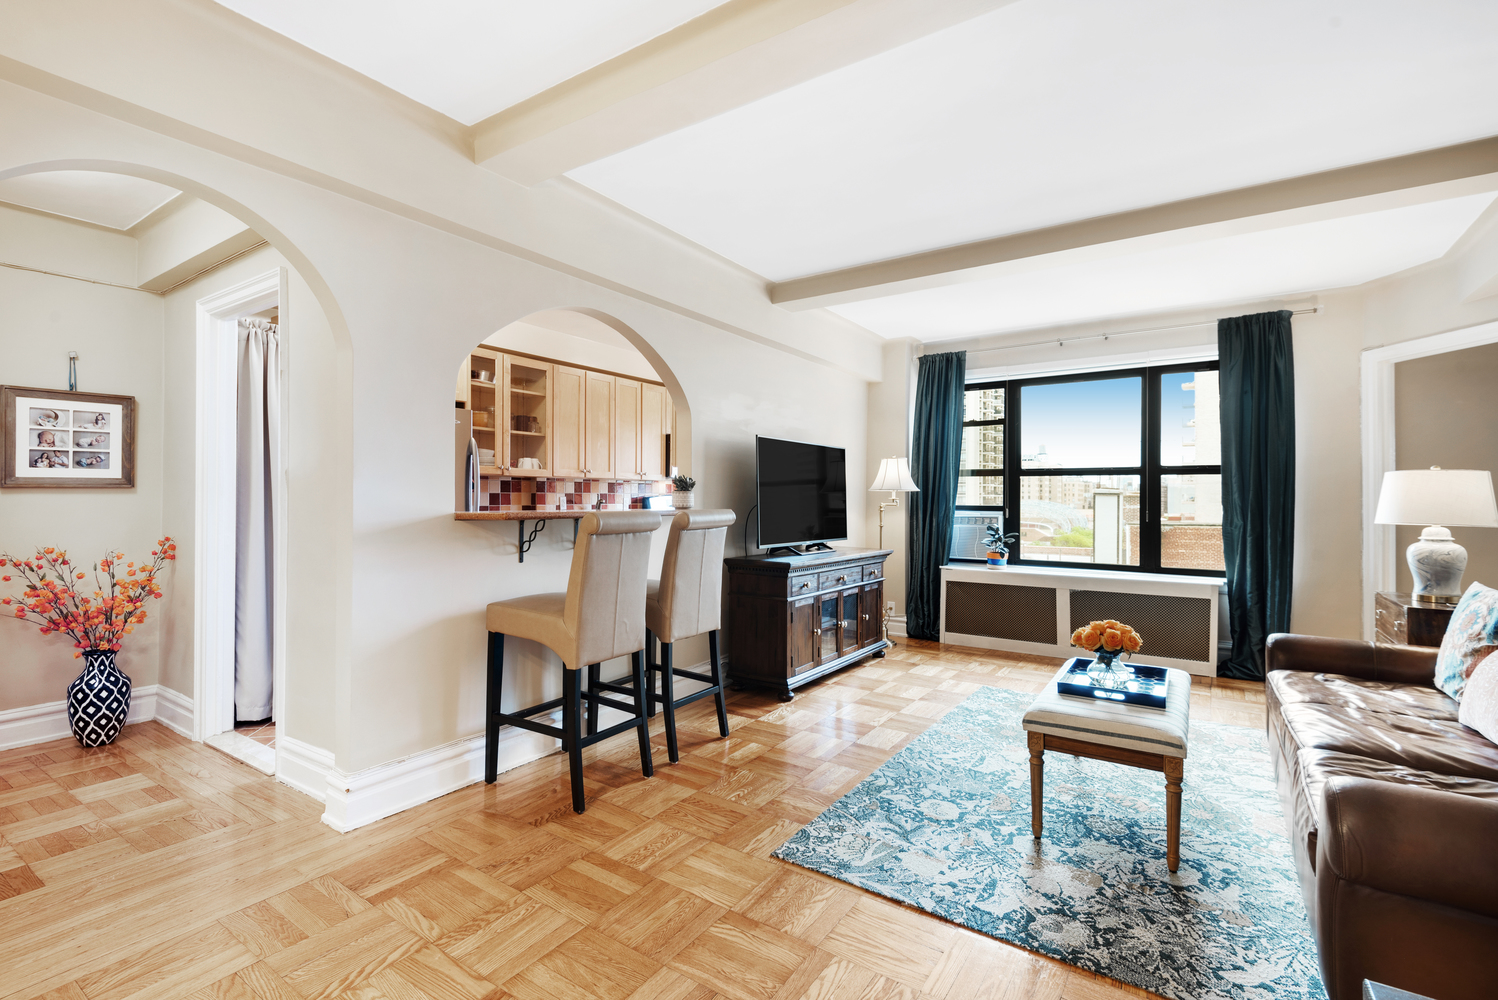 35 west 92nd street #9F - 1 BED | 1 BATH | UPPER WEST SIDE | $859,000